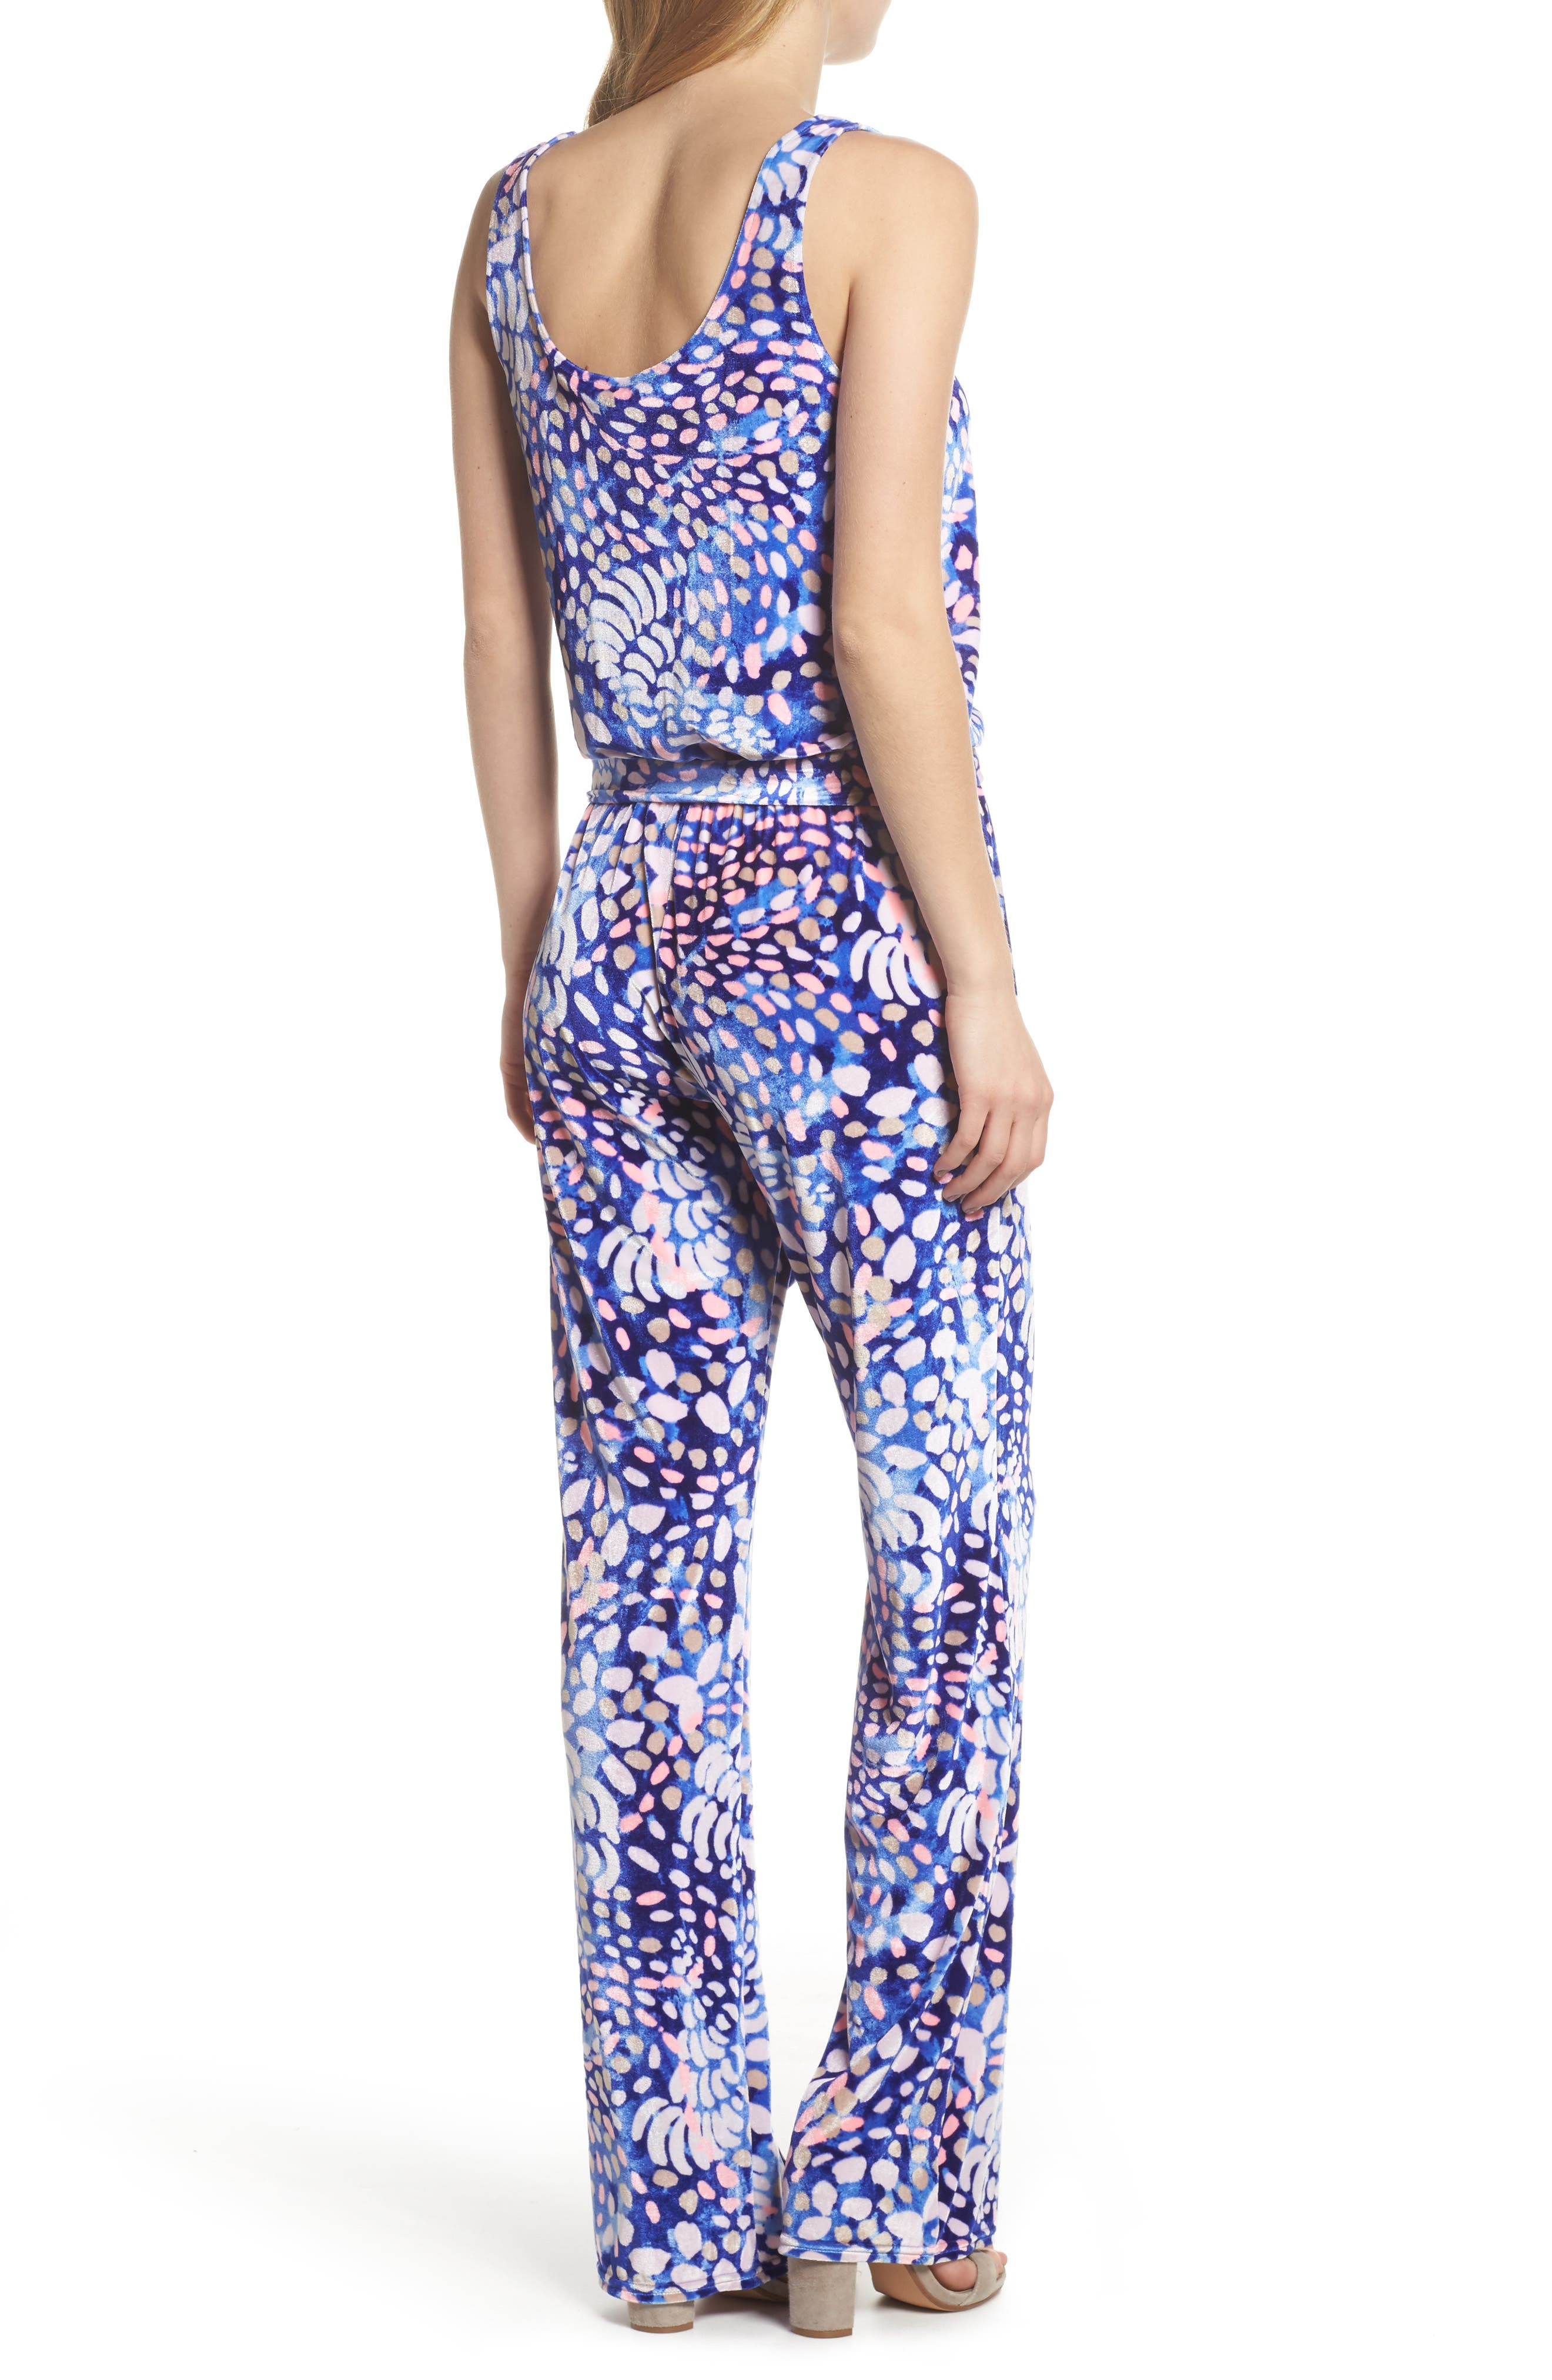 Nena Velour Jumpsuit,                             Alternate thumbnail 2, color,                             Beckon Blue Sparkling Grotto